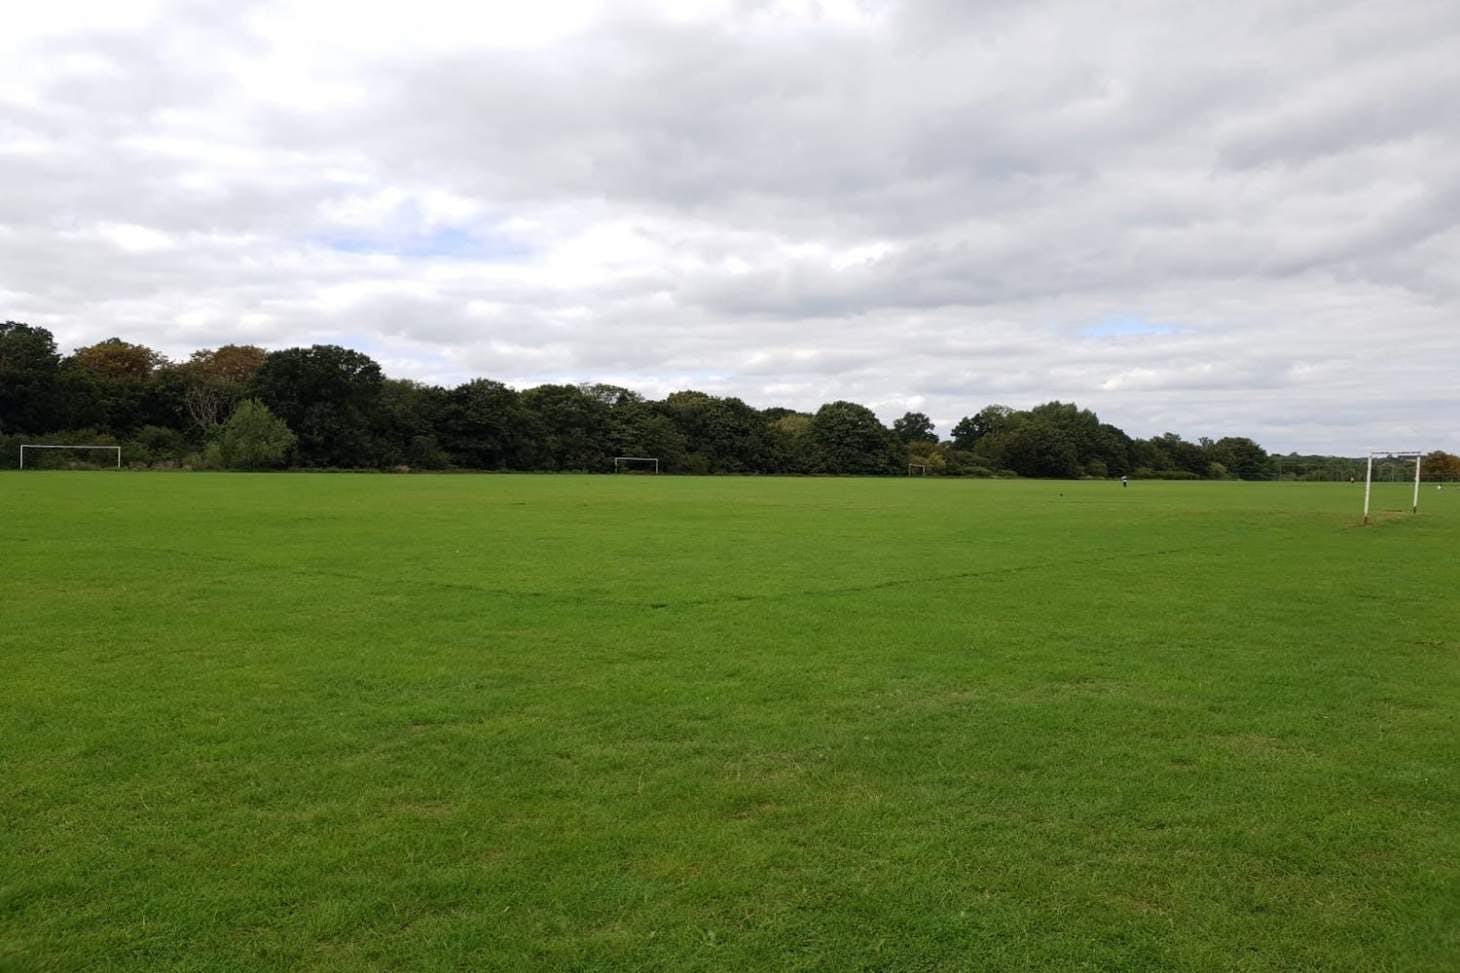 Muswell Hill Playing Fields 11 a side junior | Grass football pitch